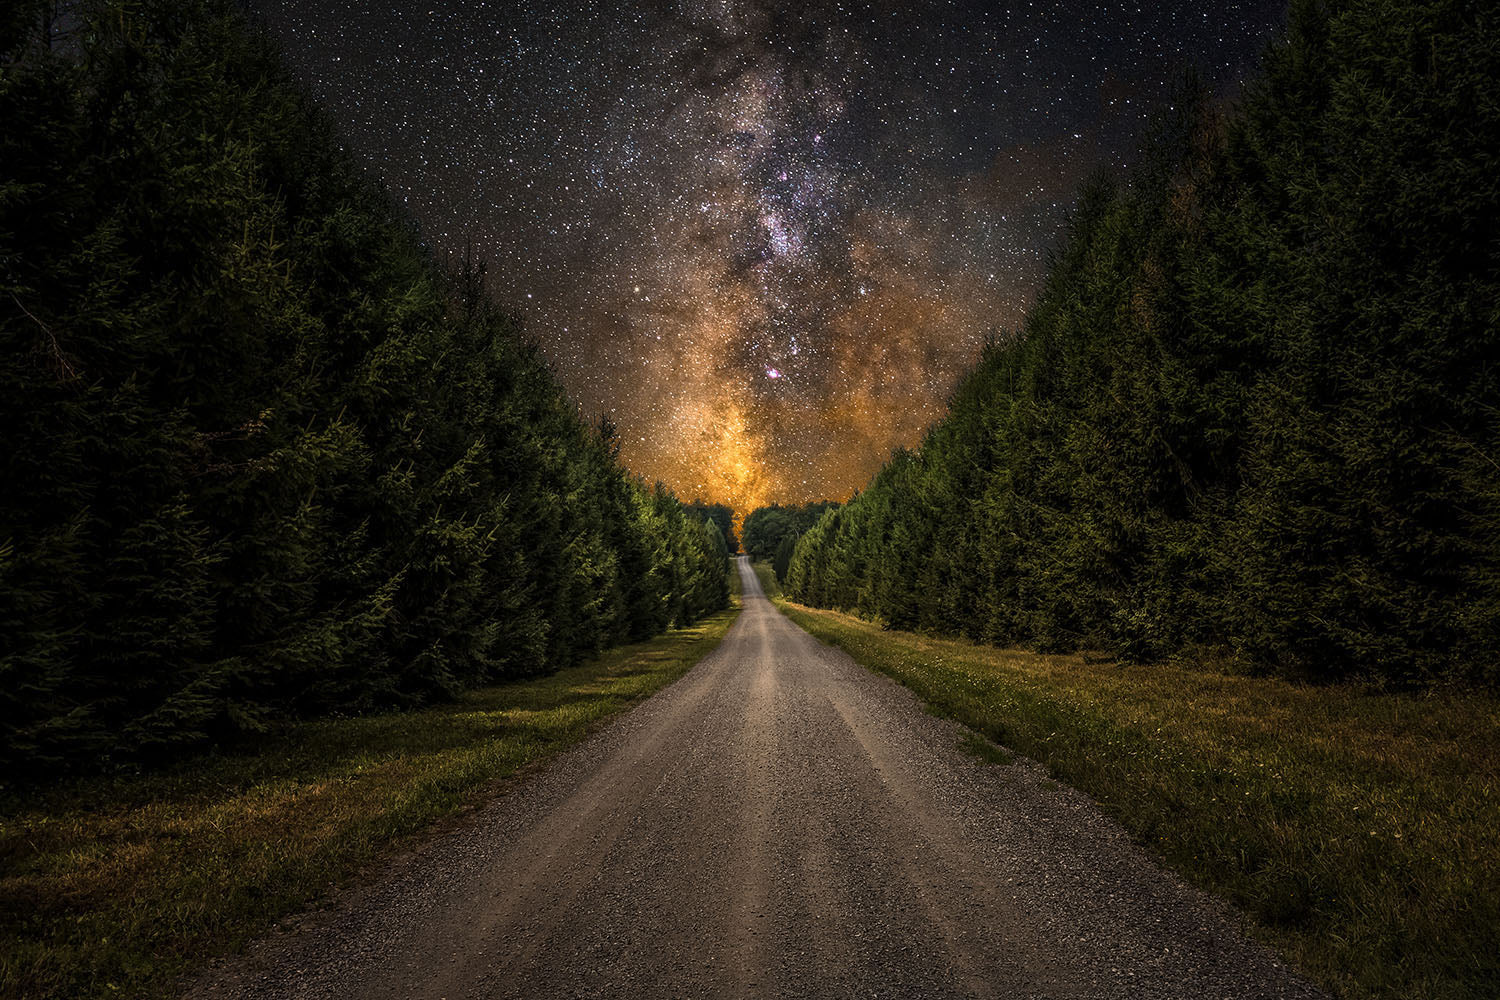 Milky Way galaxy near Cherry Springs State Park - Pennsylvania